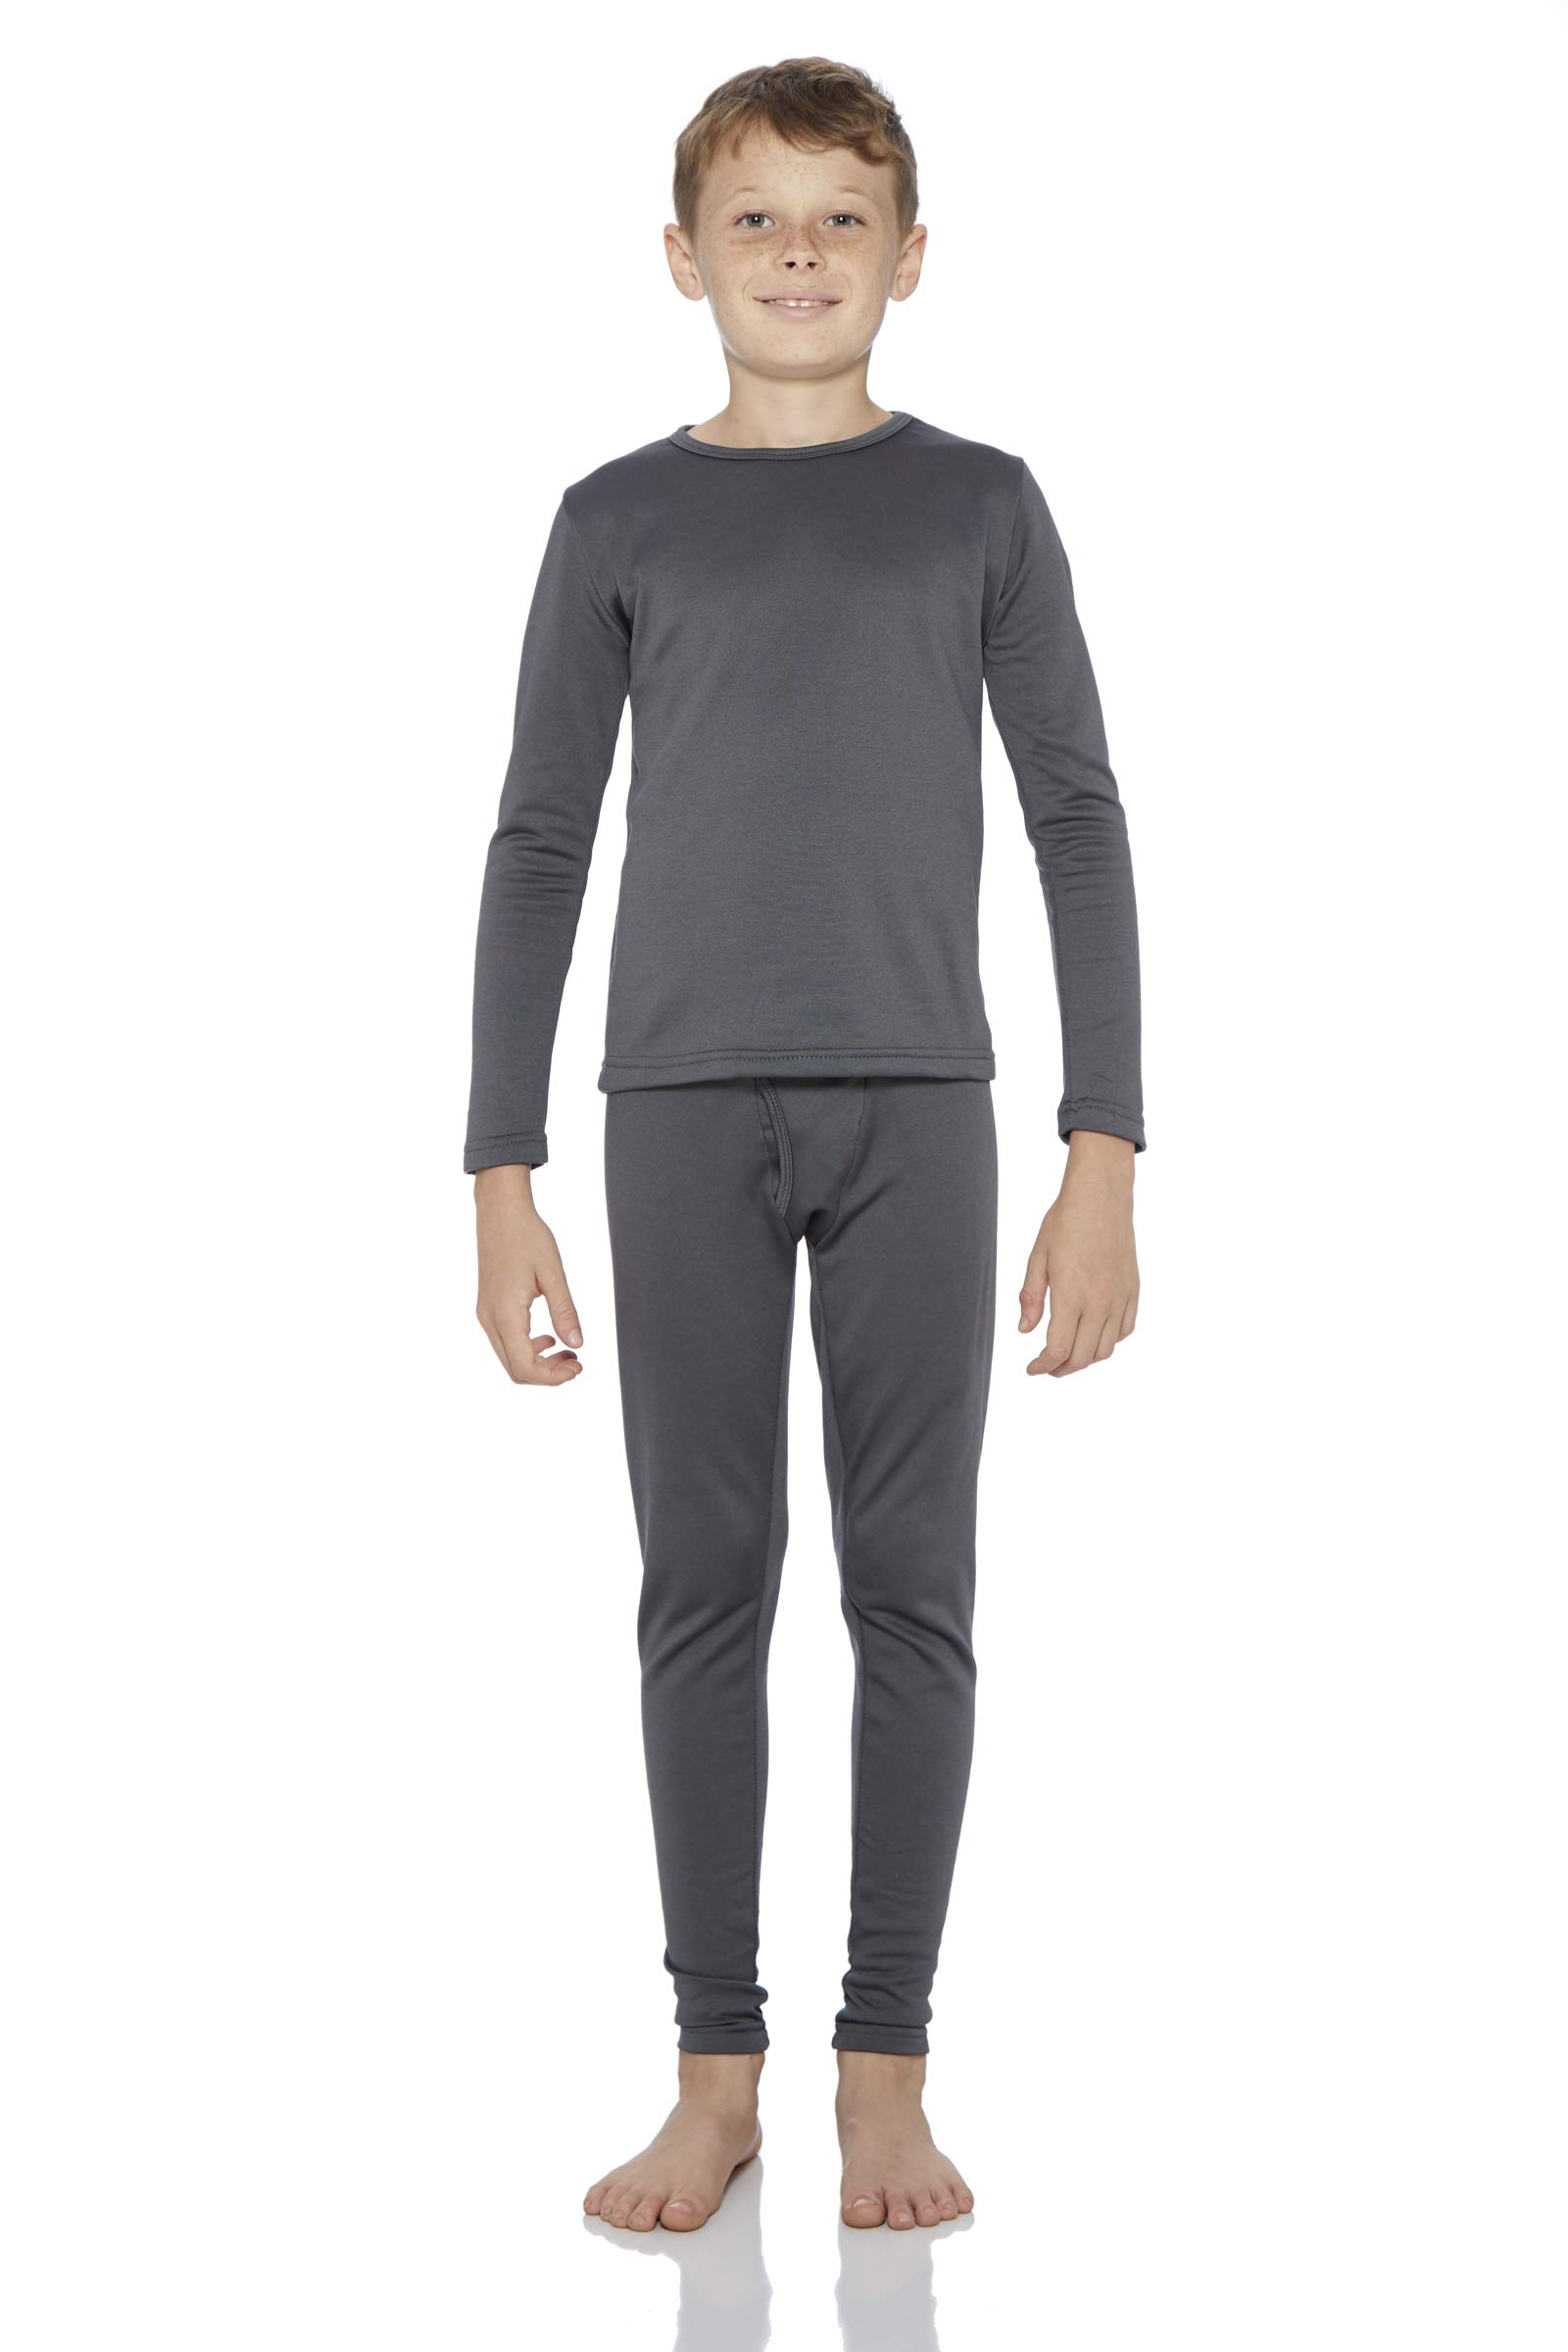 Rocky Thermal Underwear for Boys Fleece Lined Thermals Kids Base Layer Long John Set Charcoal by Rocky